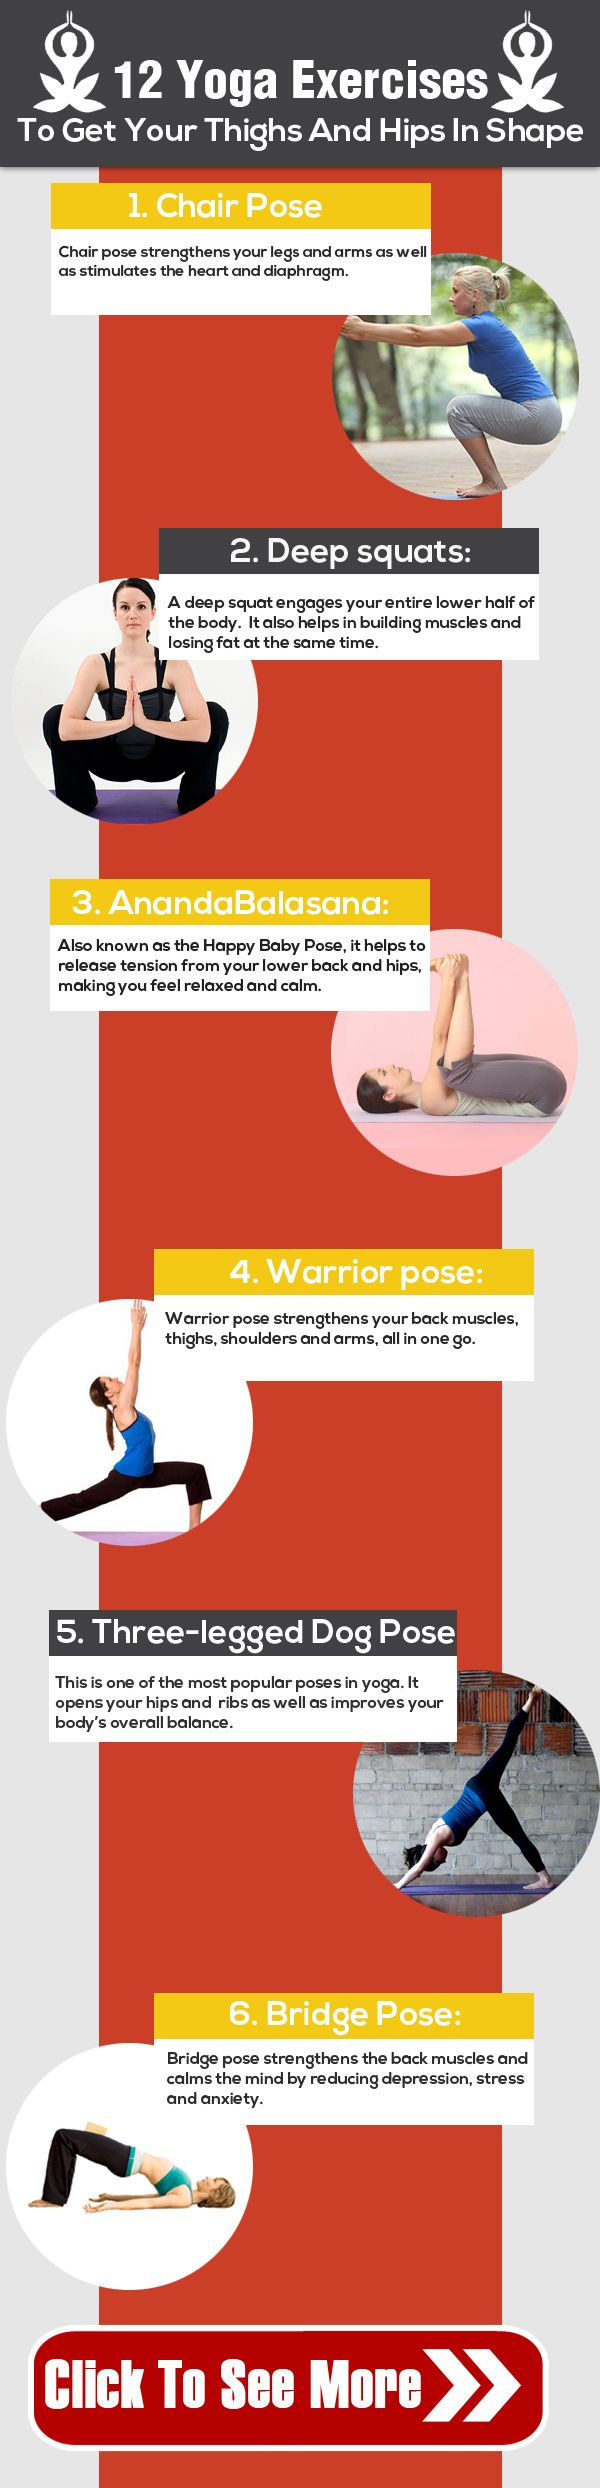 The truth is that only exercises will help you tone down the lower section of your body. There are two ways to achieving a toned body, one is to head to the gym and the other is to indulge in yoga exercises.